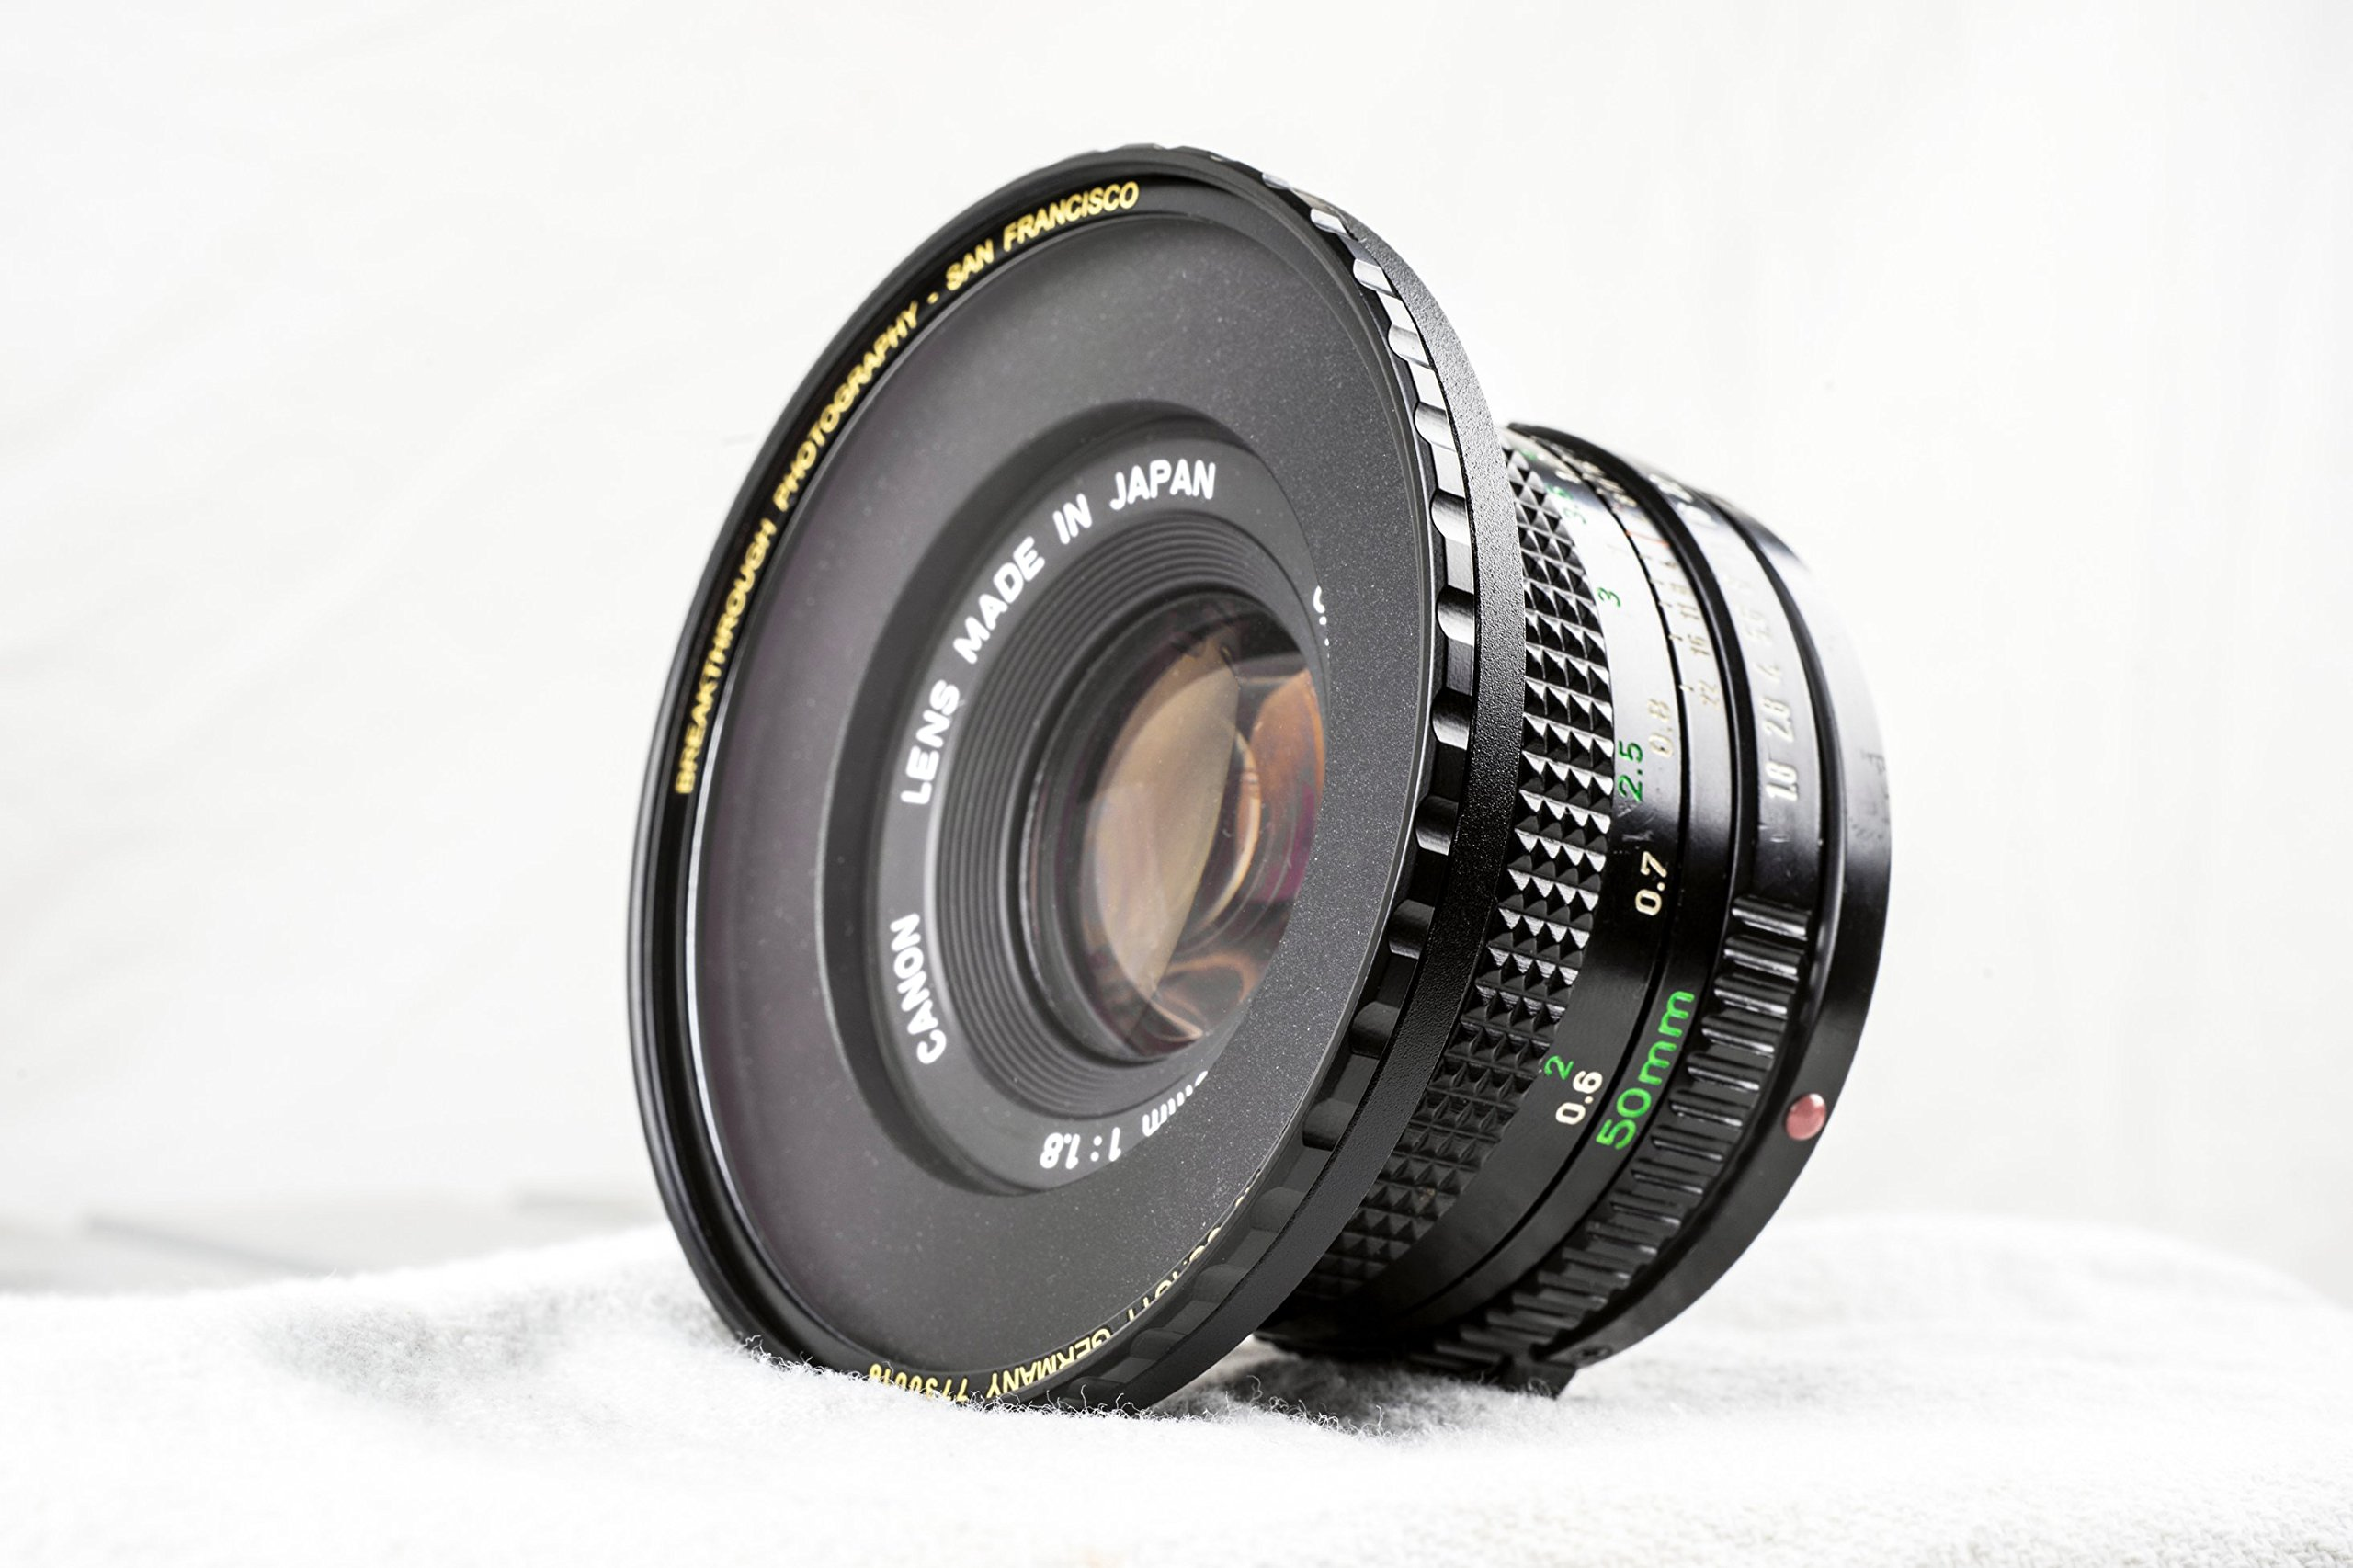 82mm X4 UV Filter For Camera Lenses - UV Protection Photography Filter with Lens Cloth - MRC16, SCHOTT B270, Nano Coatings, Ultra-Slim, Weather-Sealed by Breakthrough Photography by Breakthrough Photography (Image #6)